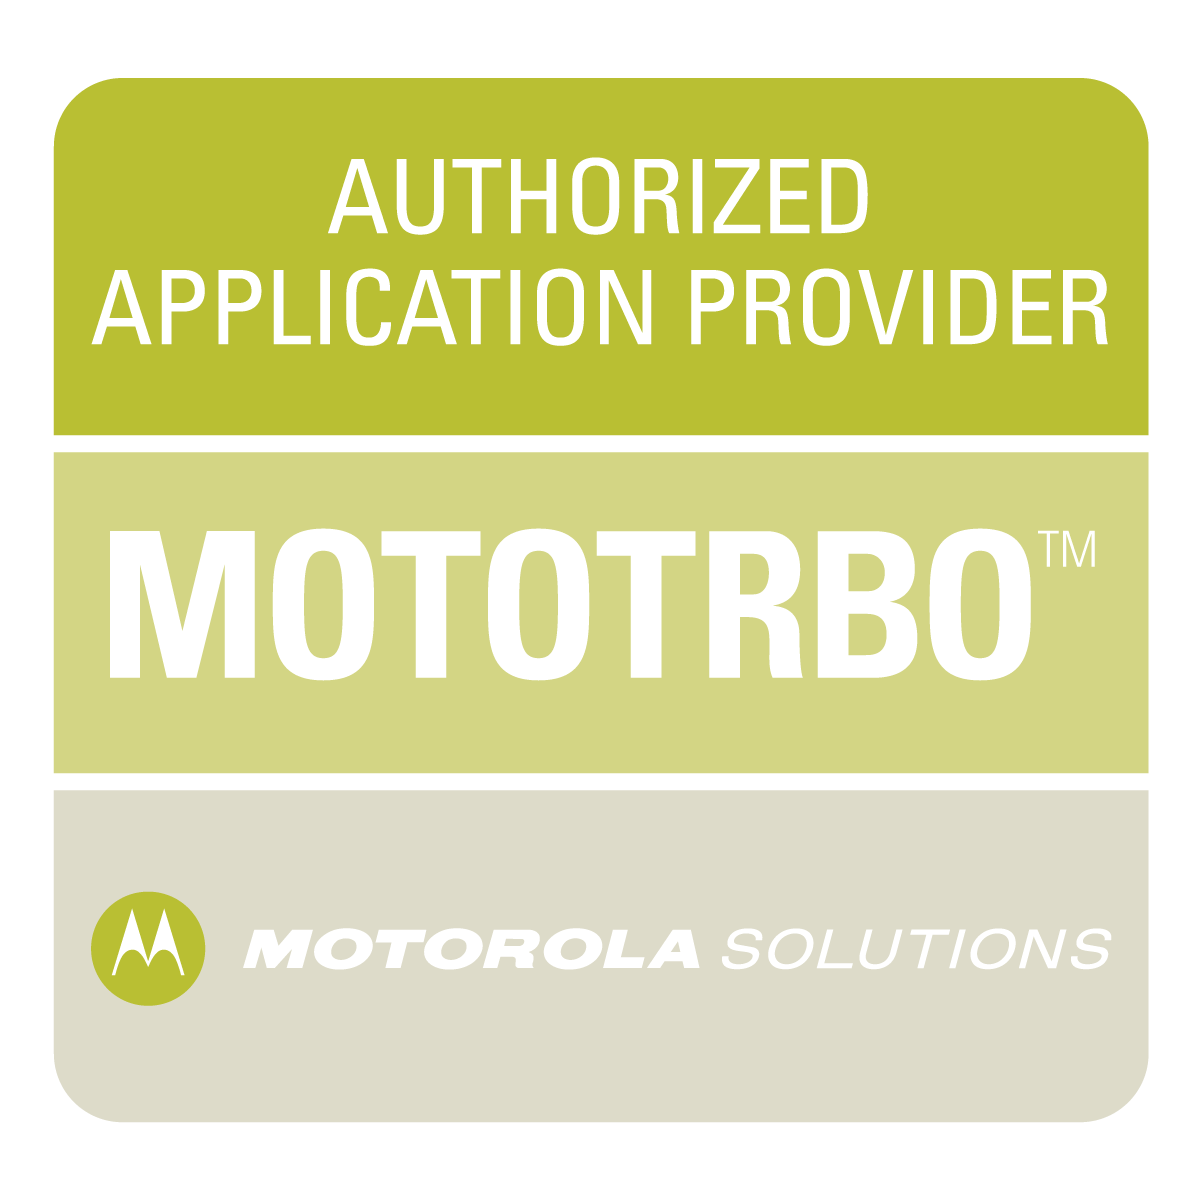 Authorized Application Provider for MotoTrbo